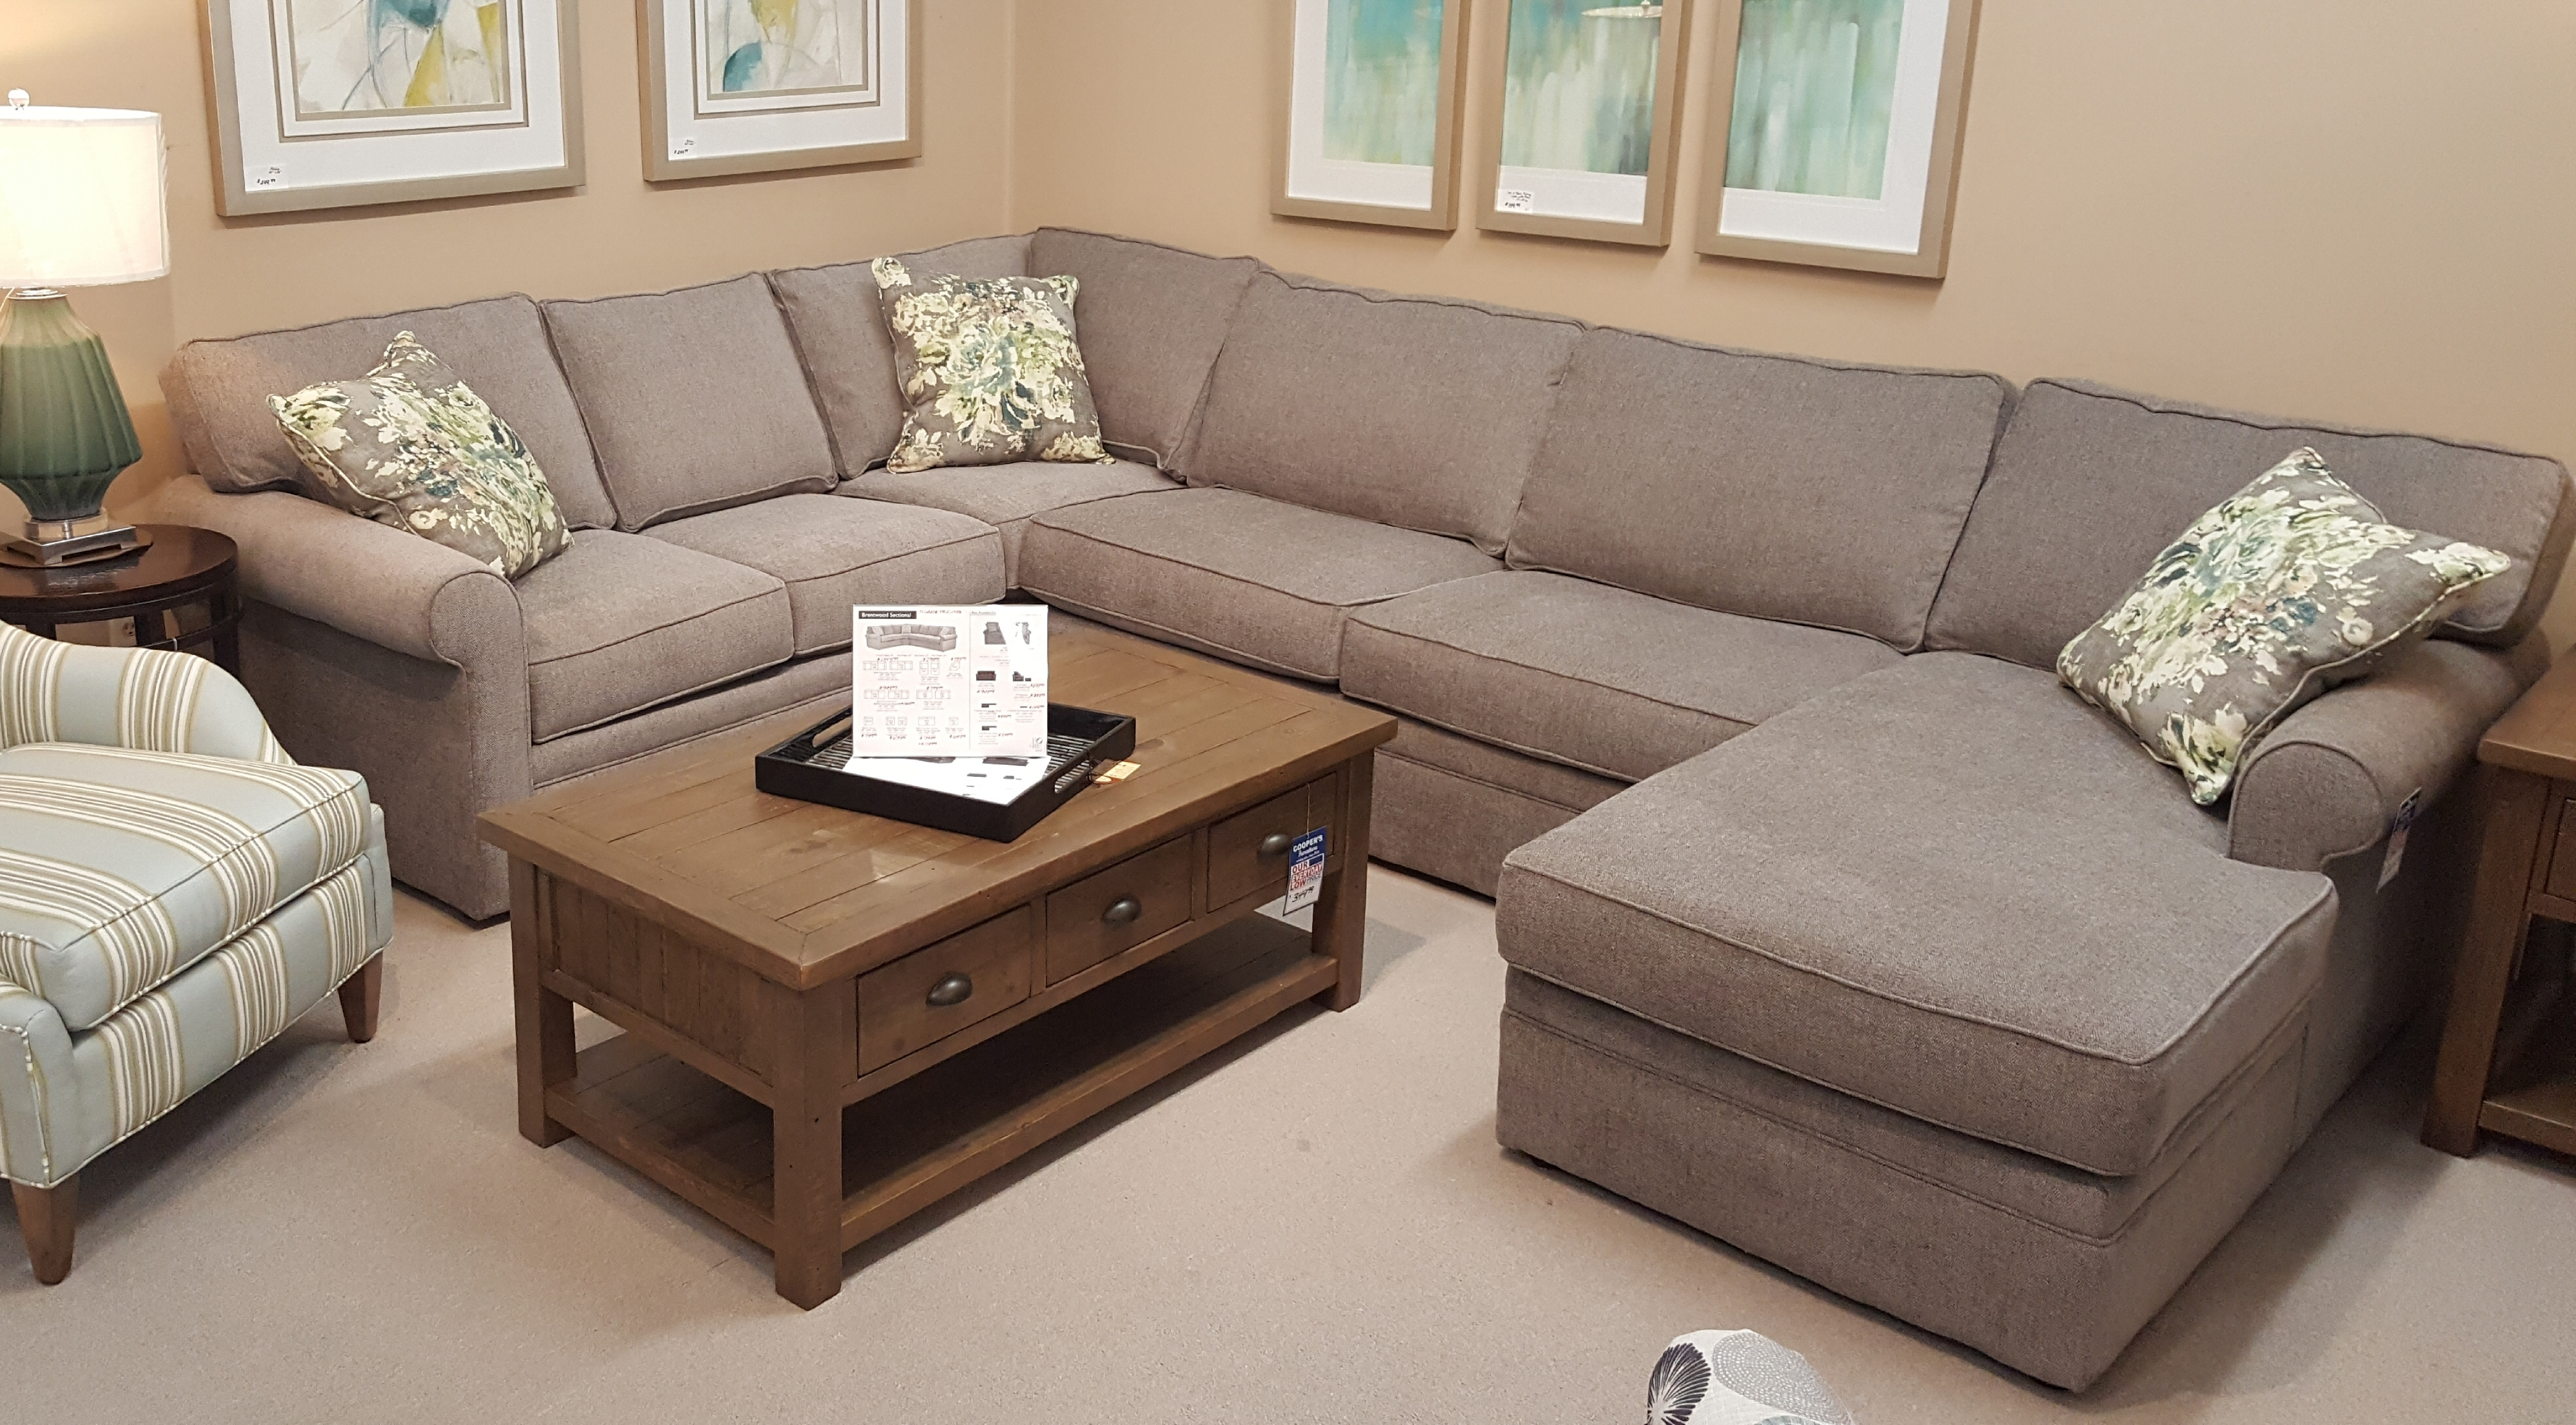 Living Room Furniture Cary Nc | Sofas, Recliners, Sectionals Inside Durham Region Sectional Sofas (Image 2 of 10)